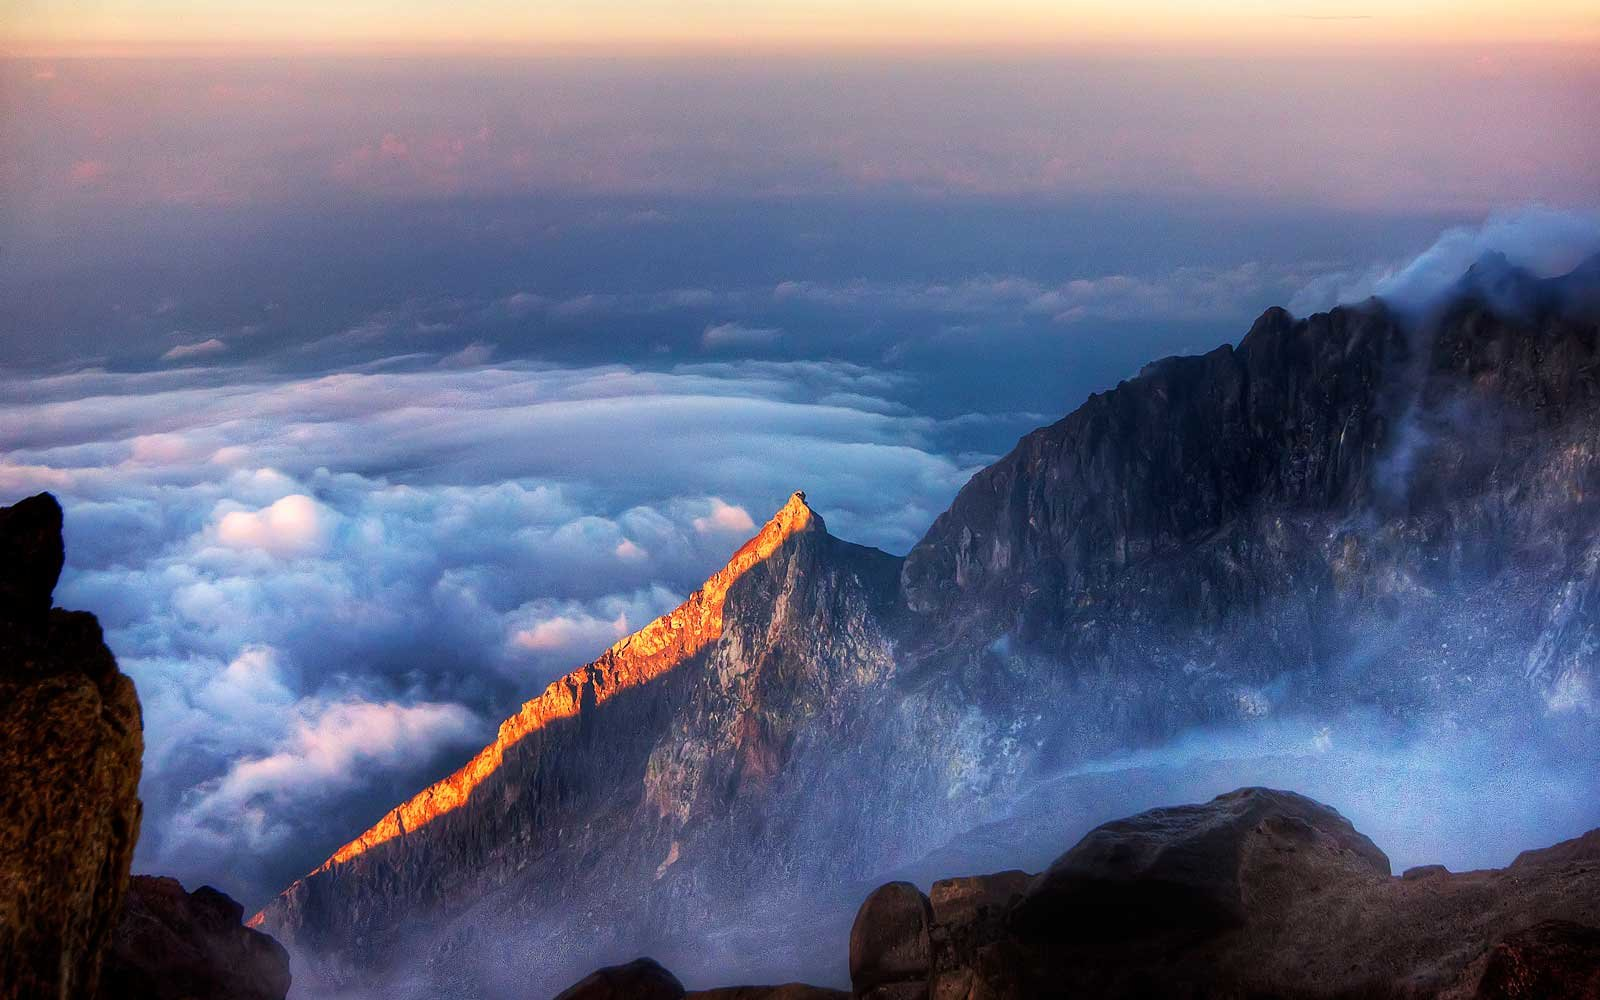 Mount Merapi volcano next to Yogyakarta at dawn.